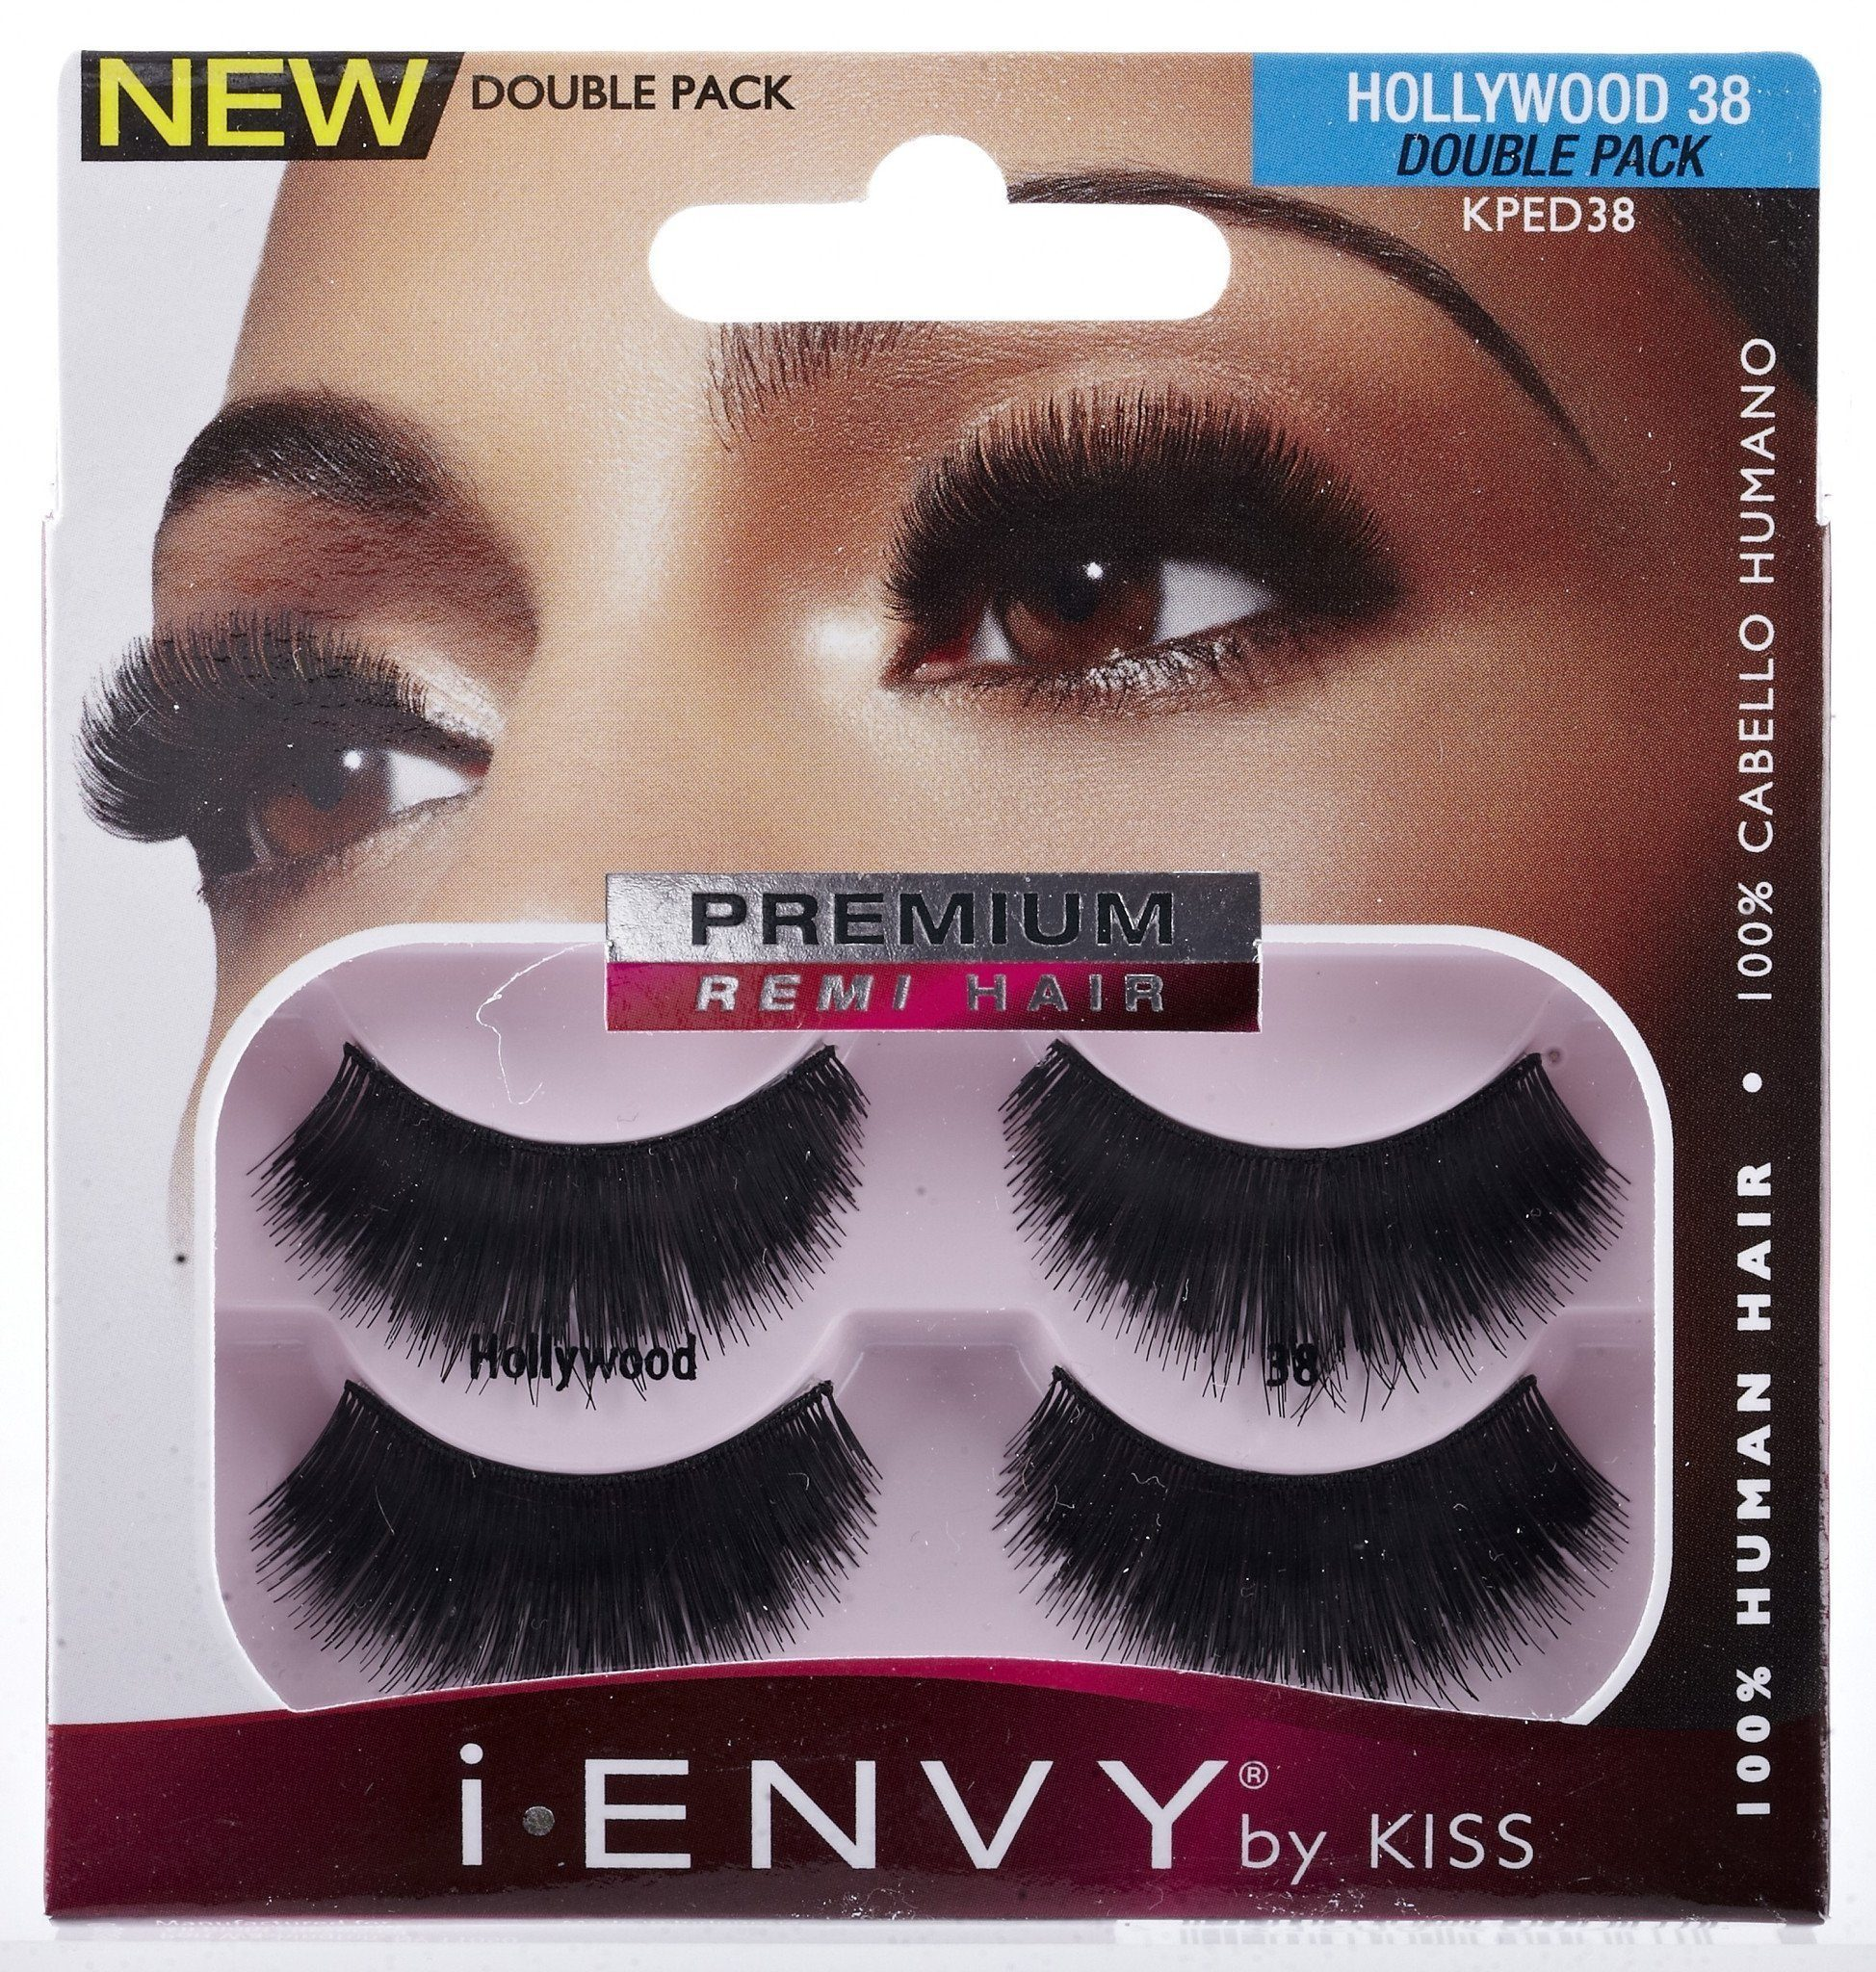 7c1fe12994f #Kped38 Double Pack 38 (3Pk) - Young's Trading: Beauty Supply and  Accessories Wholesale Distributor